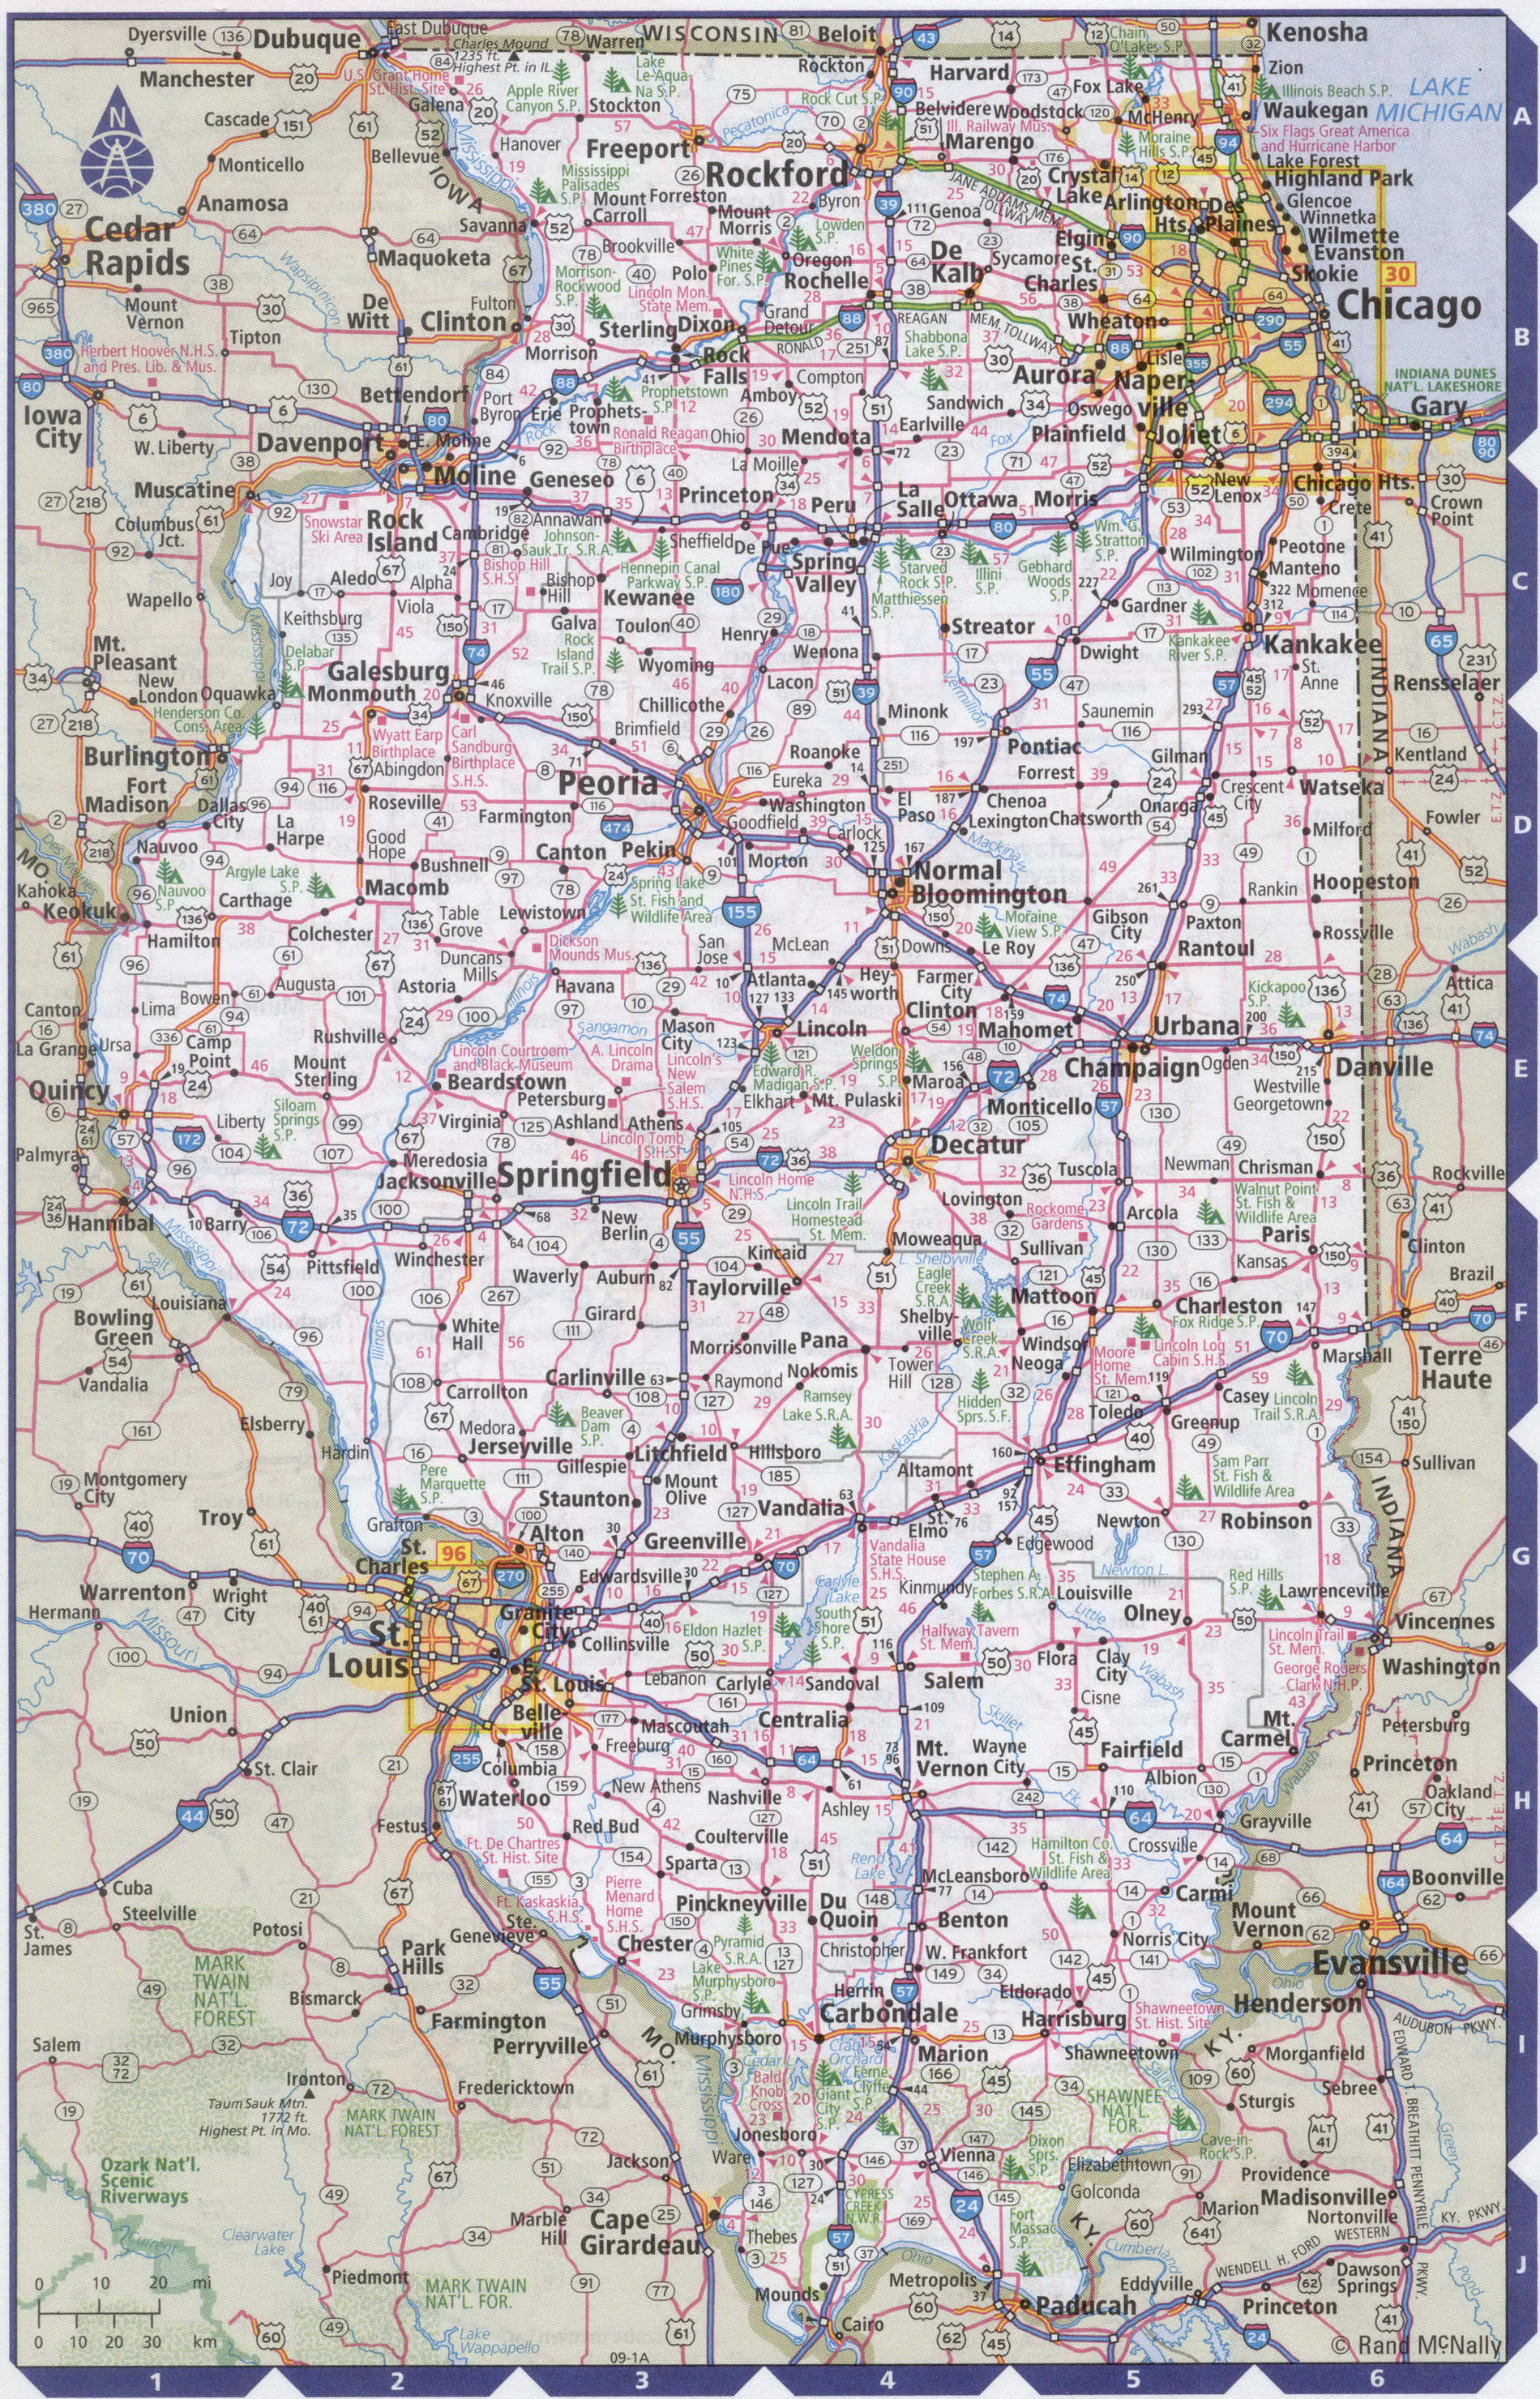 Roads map of Illinois state